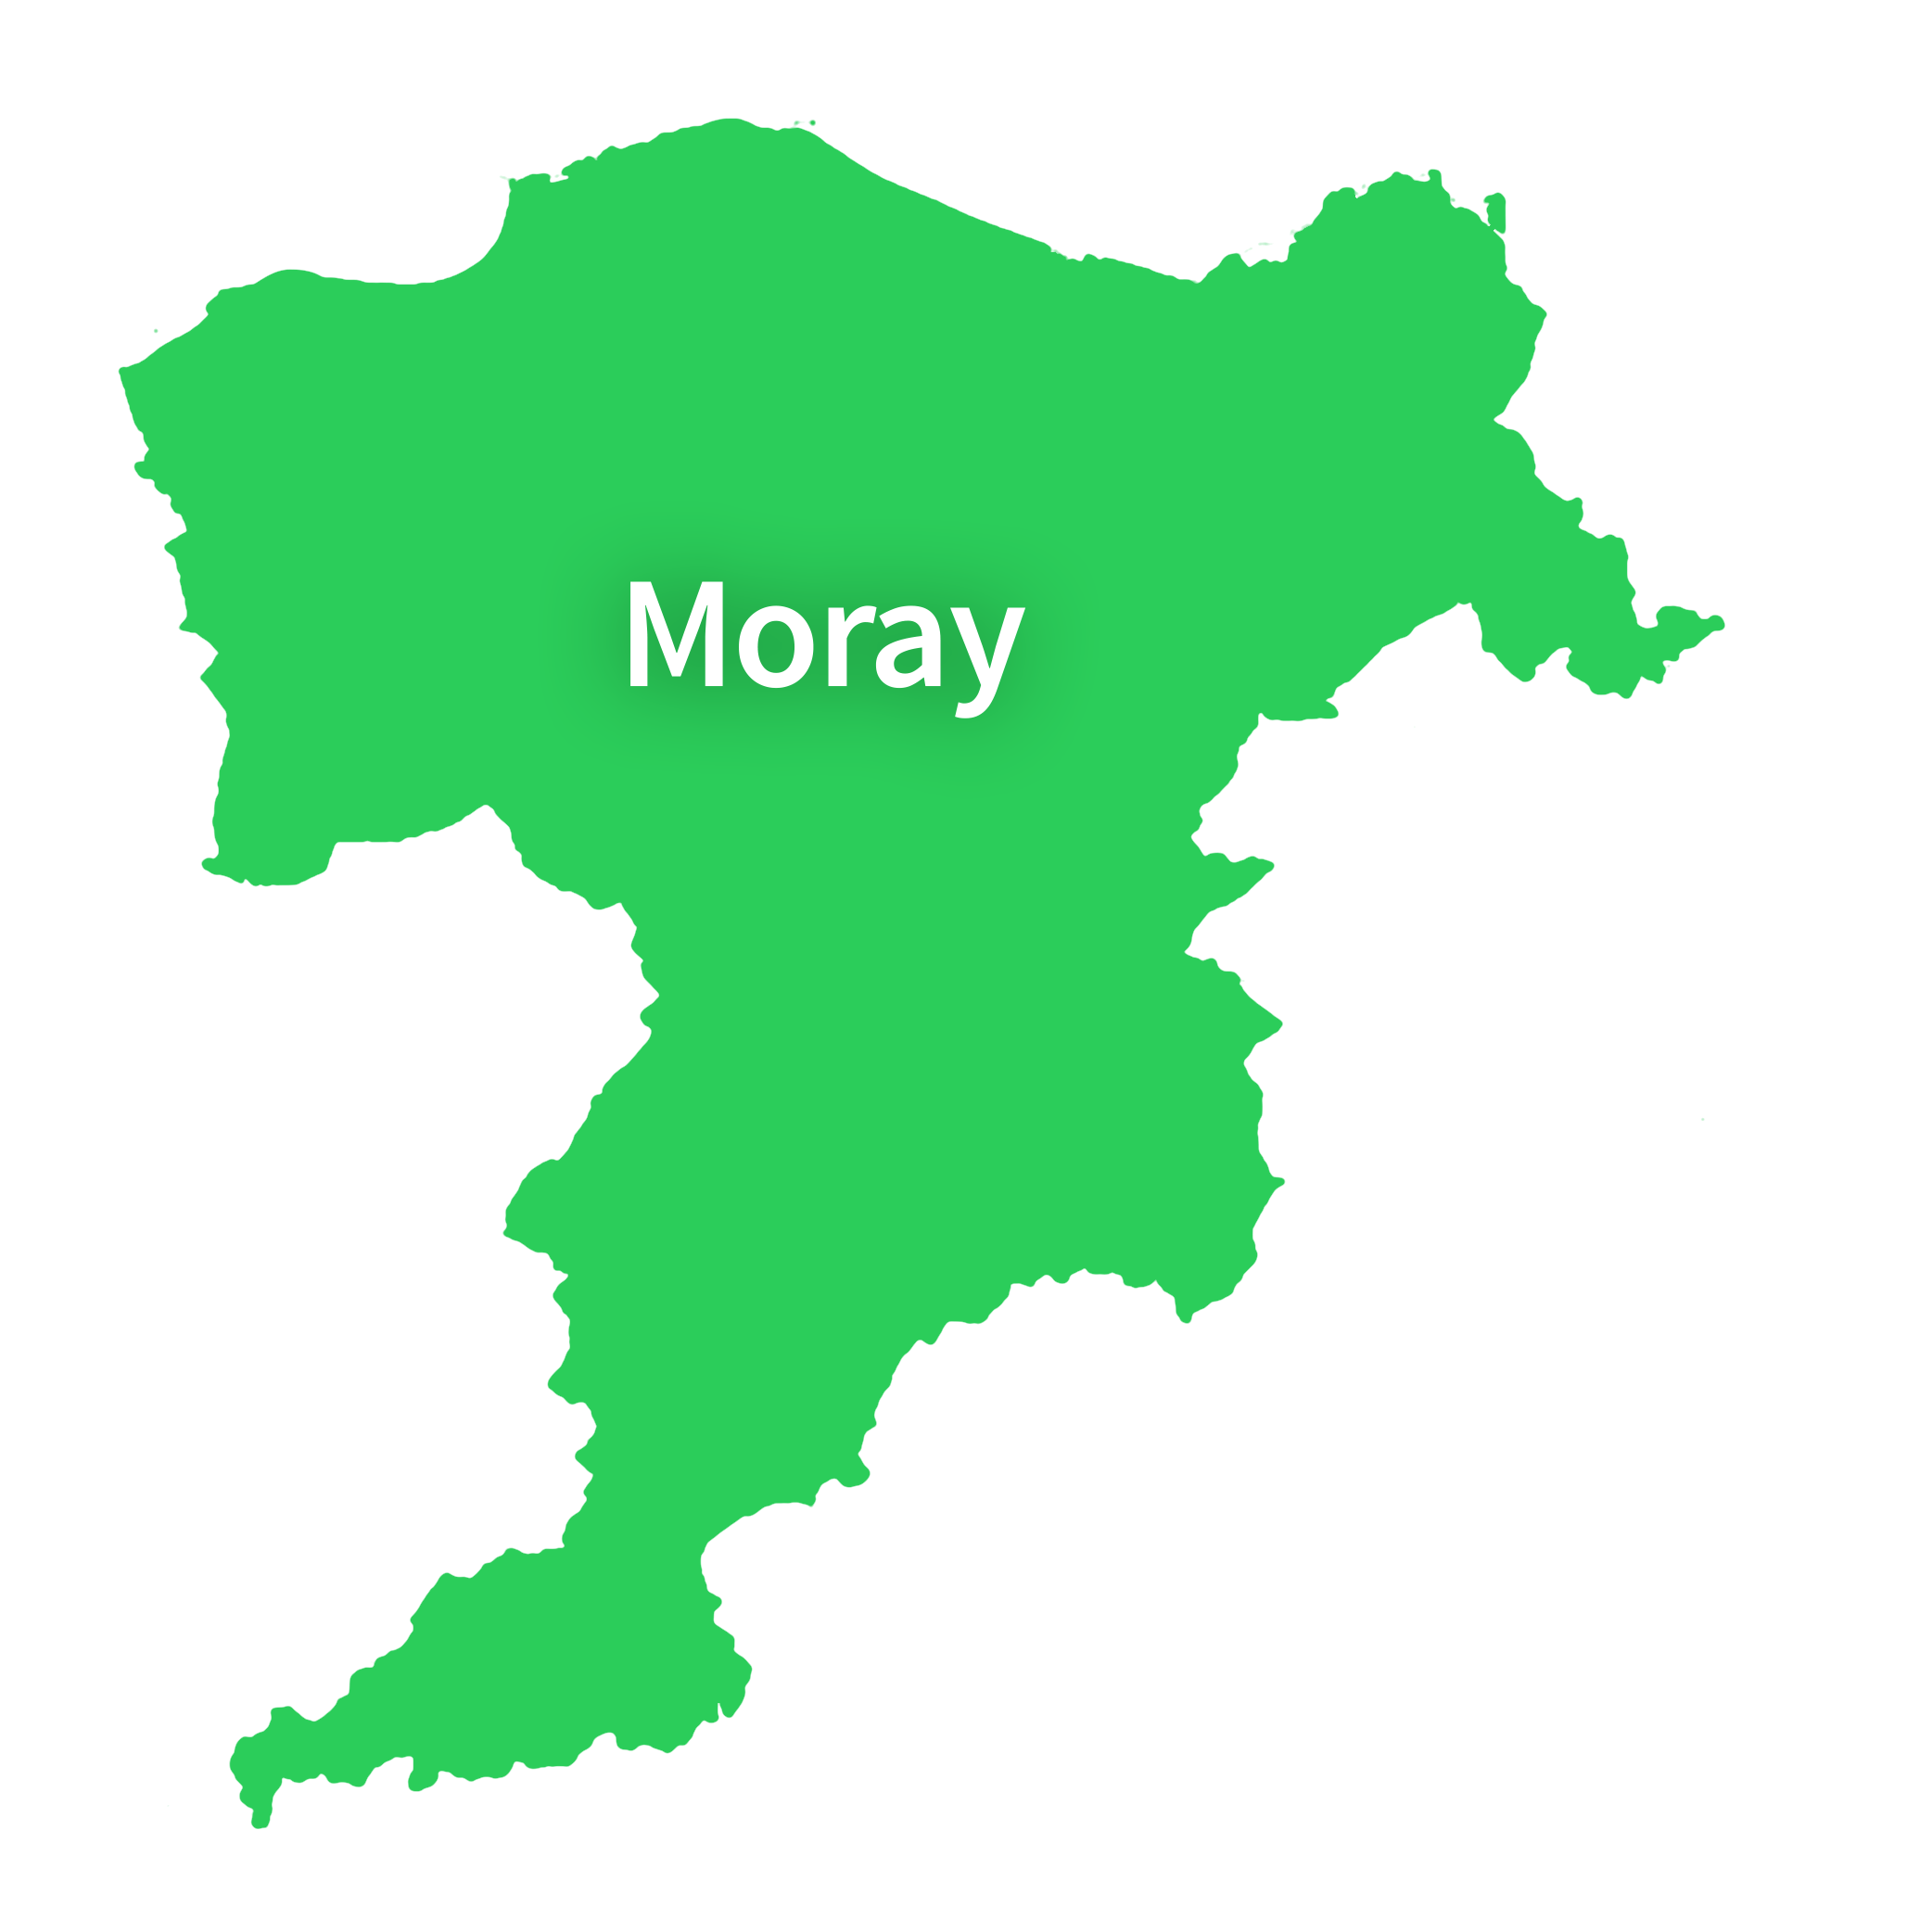 Map of Moray